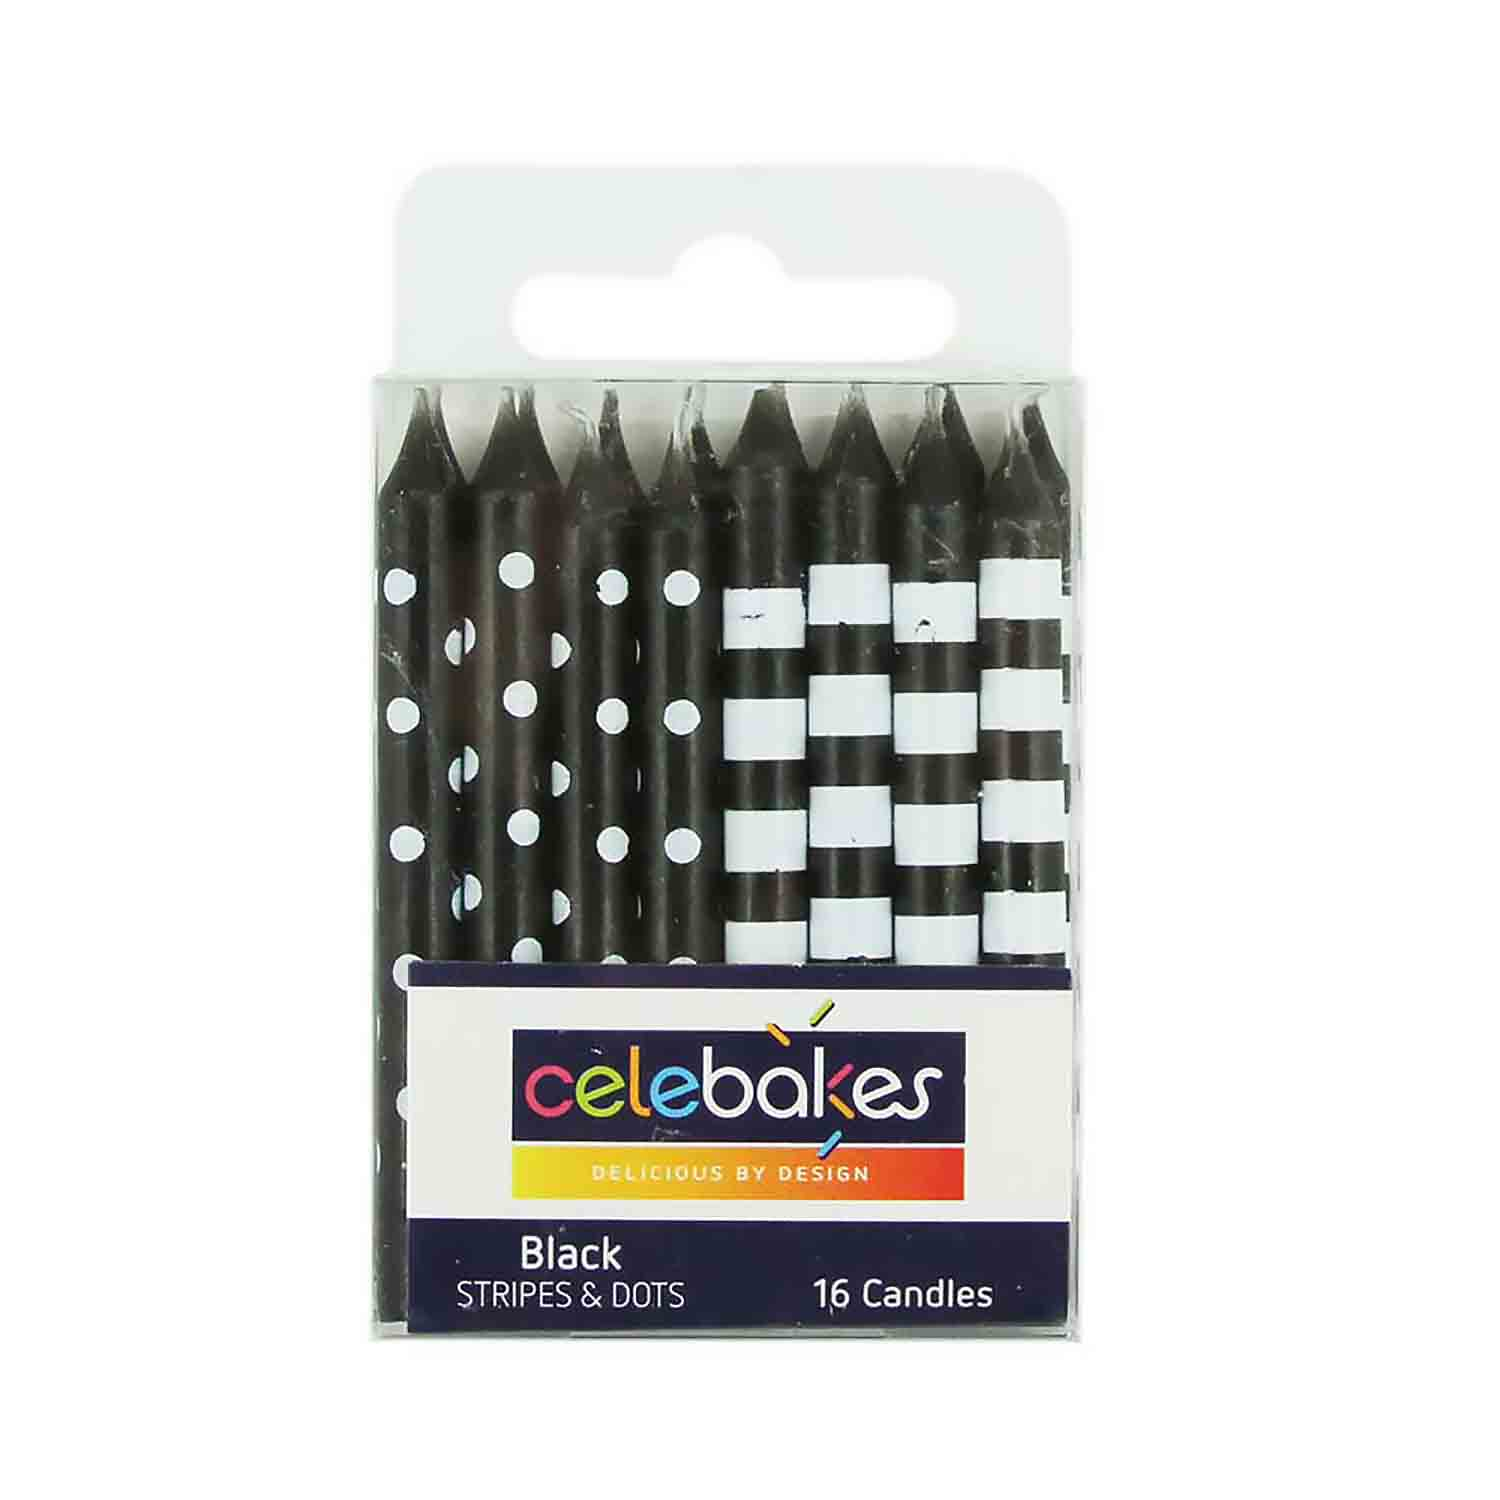 Black Stripes & Dots Candles